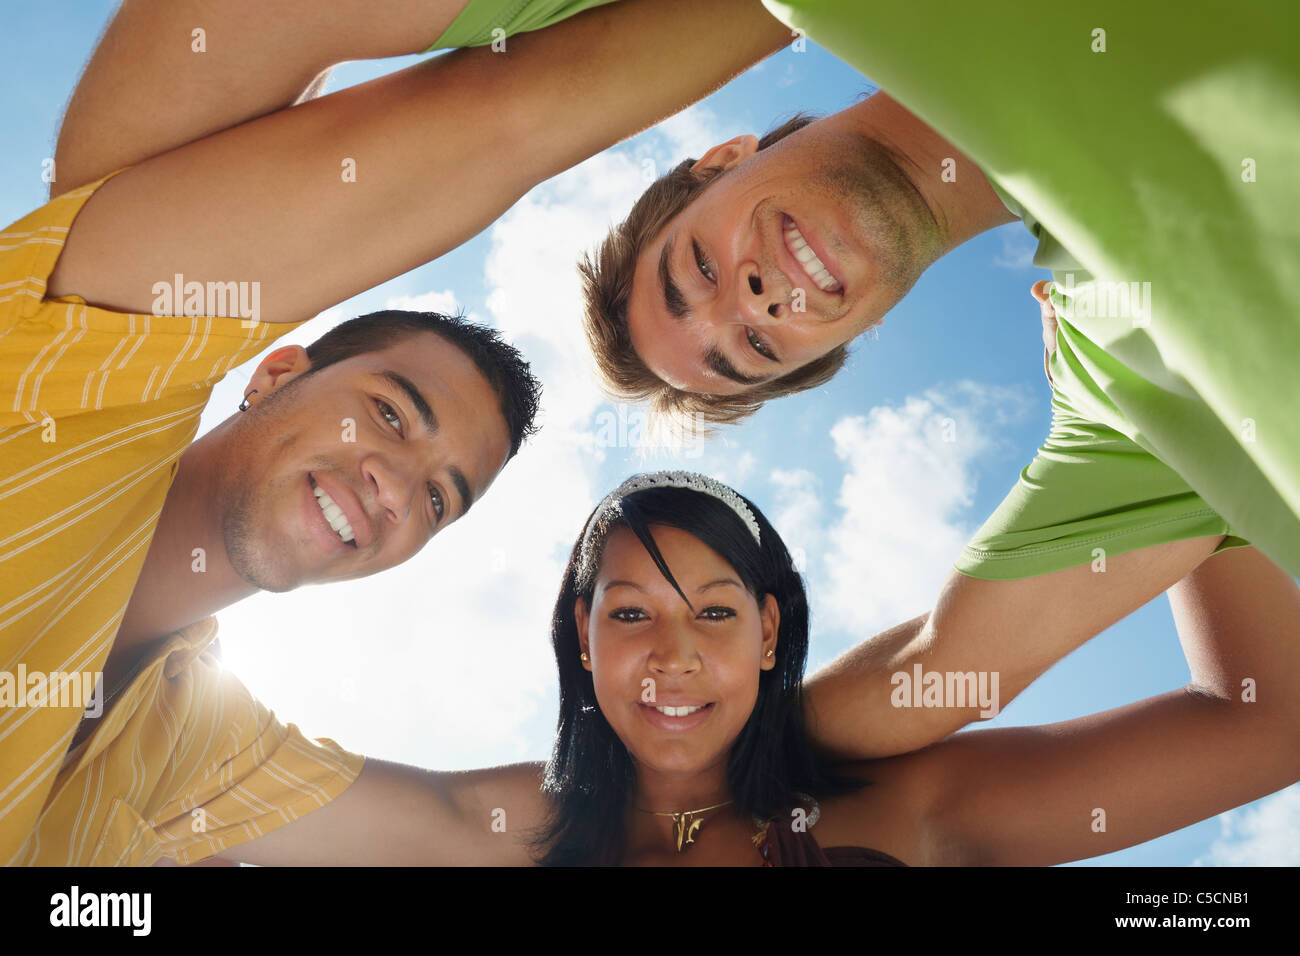 multiethnic group of male and female friends hugging and looking at camera with sky in background. Low angle view - Stock Image